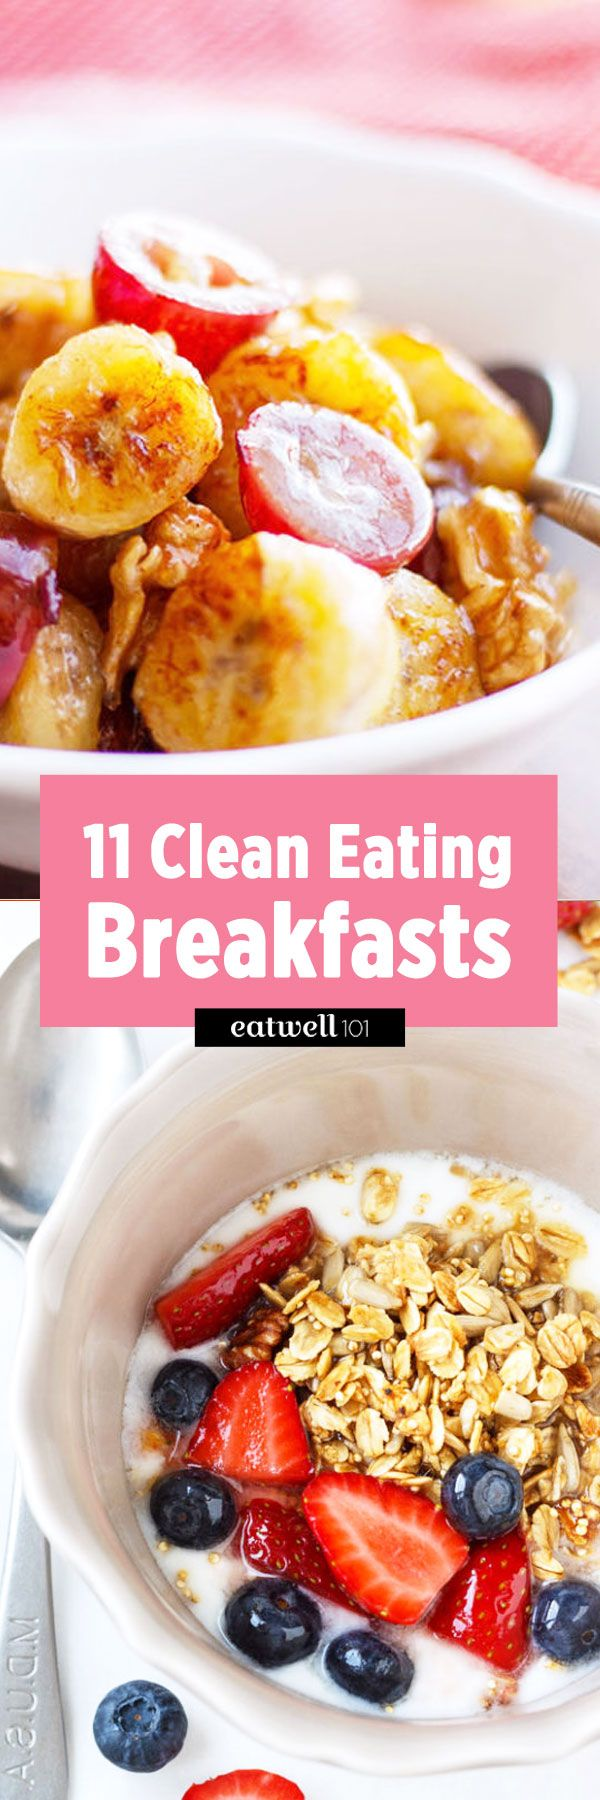 Are you looking for the perfect clean eating breakfast? To help you in this quest, we have compiled the most popular clean eating breakfast and brunch recipes on Eatwell 101 in this recipes round-u…